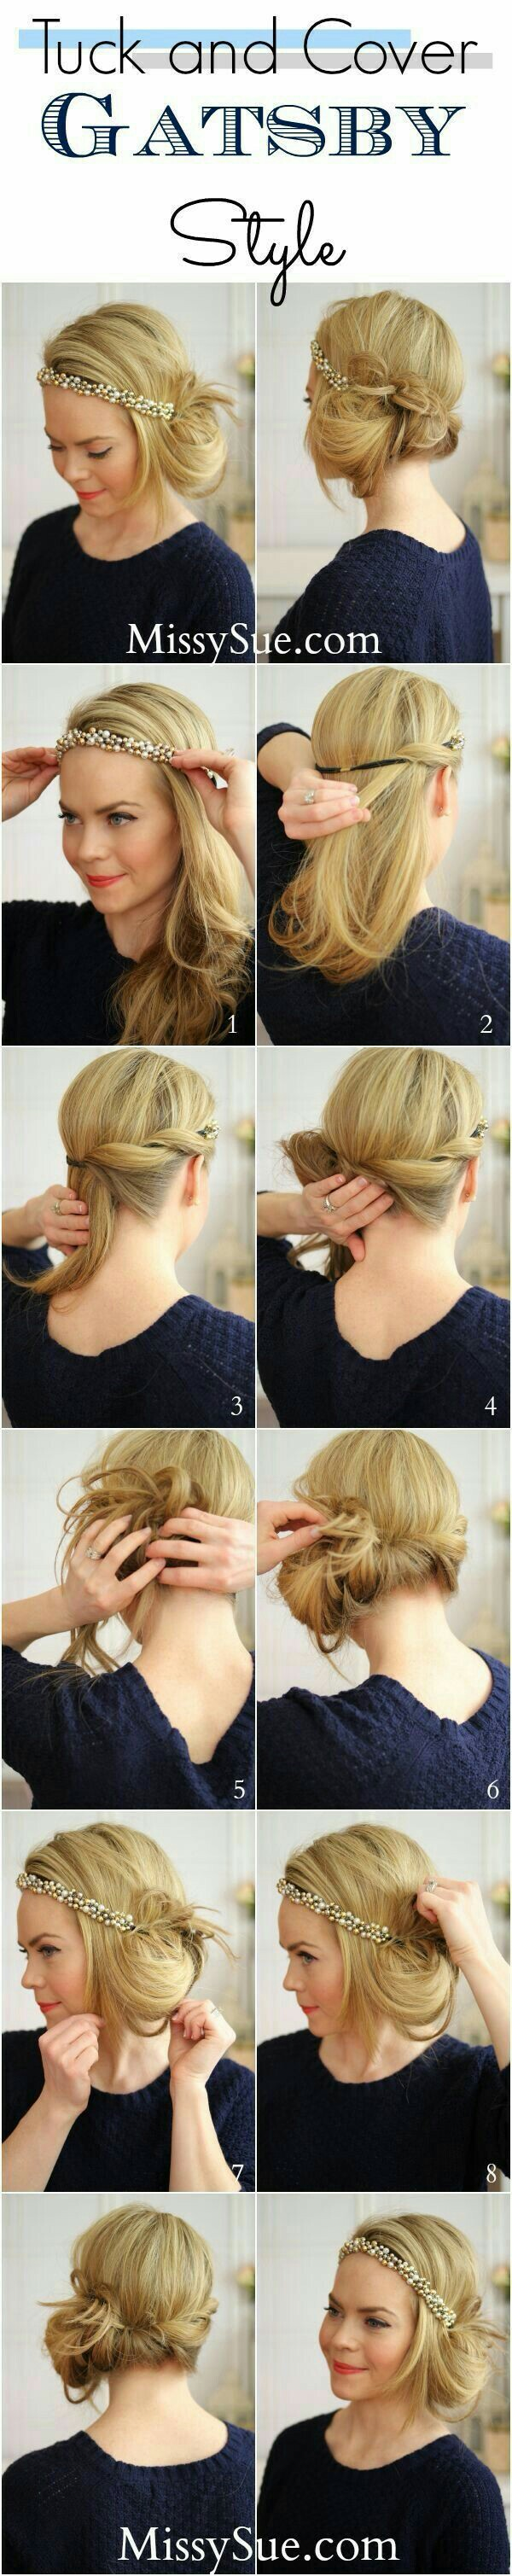 Pin by mira riknoor on hair fashion pinterest